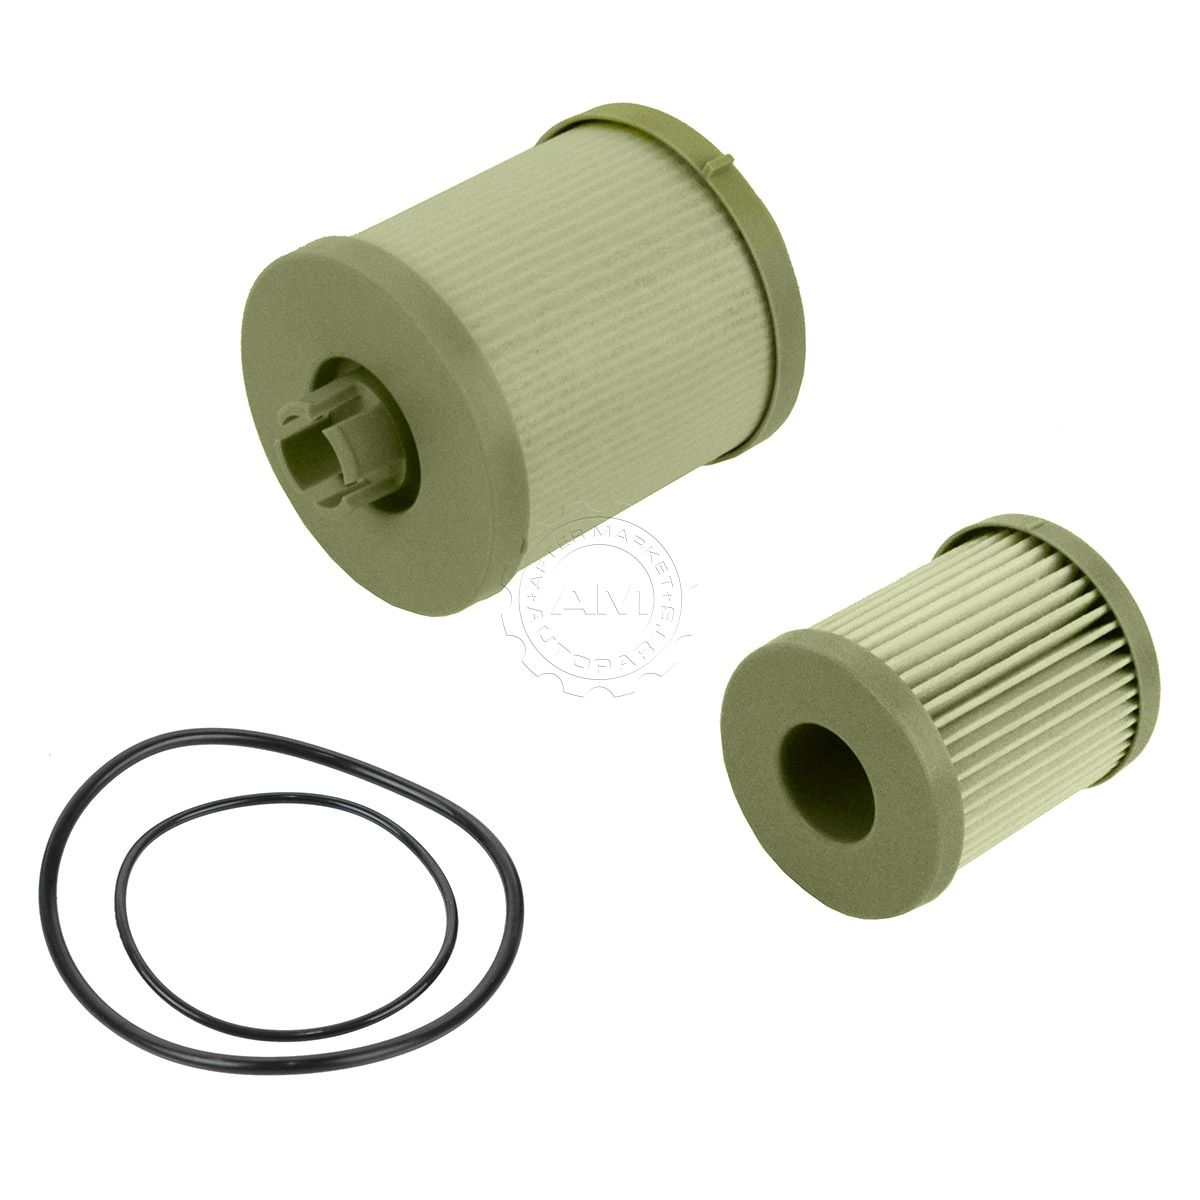 hight resolution of fuel filter water separator for ford excursion f250 f350 f450 f550 6 0l diesel